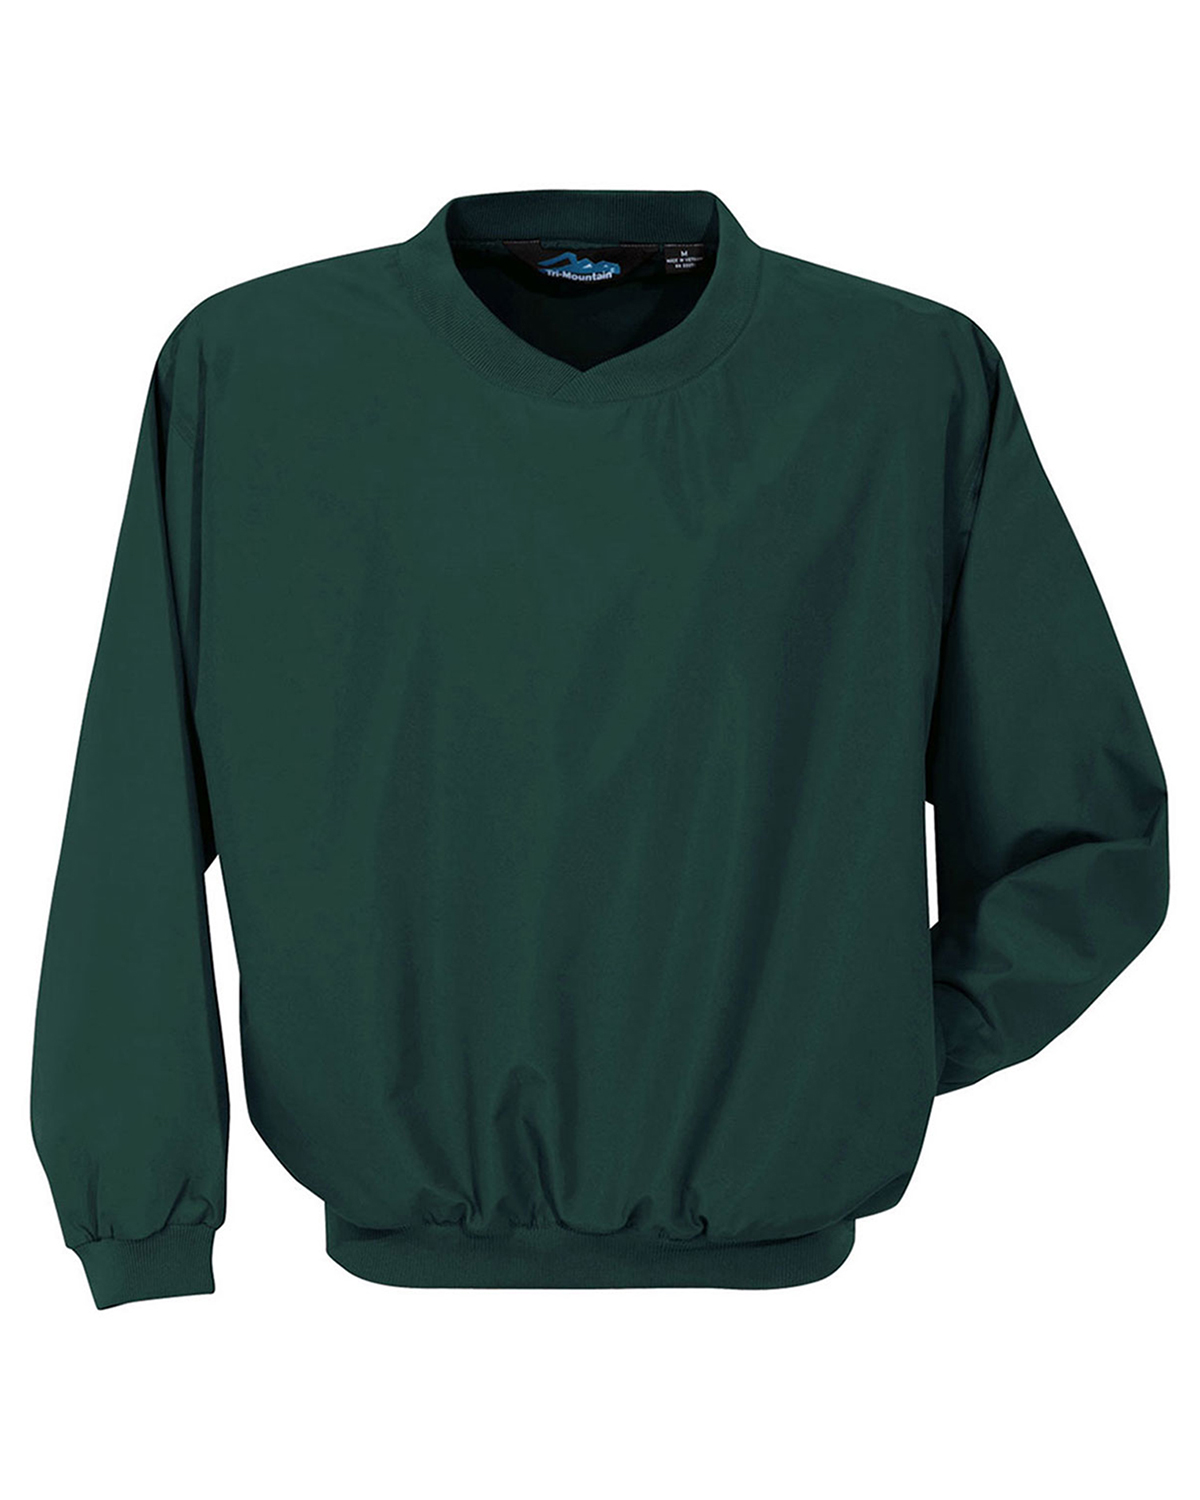 Tri Mountain Microfiber Windshirt With Nylon Lining At Big